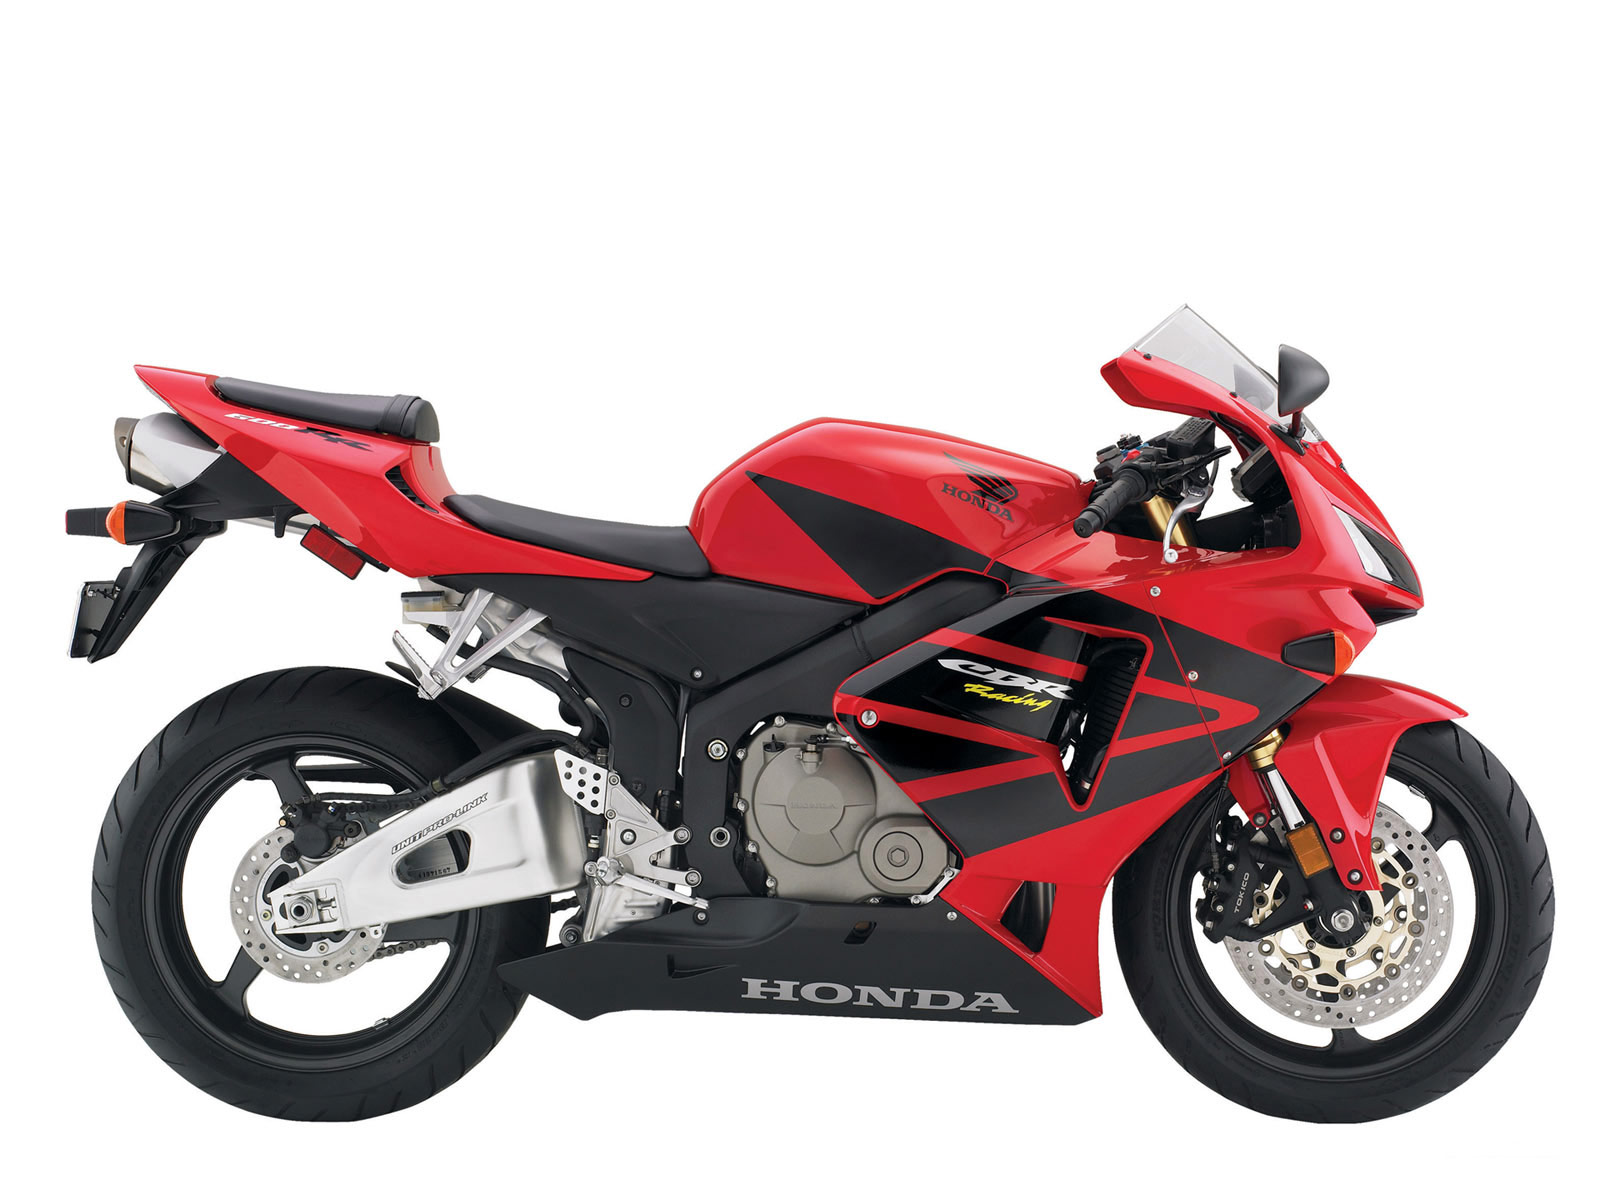 honda cbr 600 rr 2006 insurance informations specs pictures. Black Bedroom Furniture Sets. Home Design Ideas